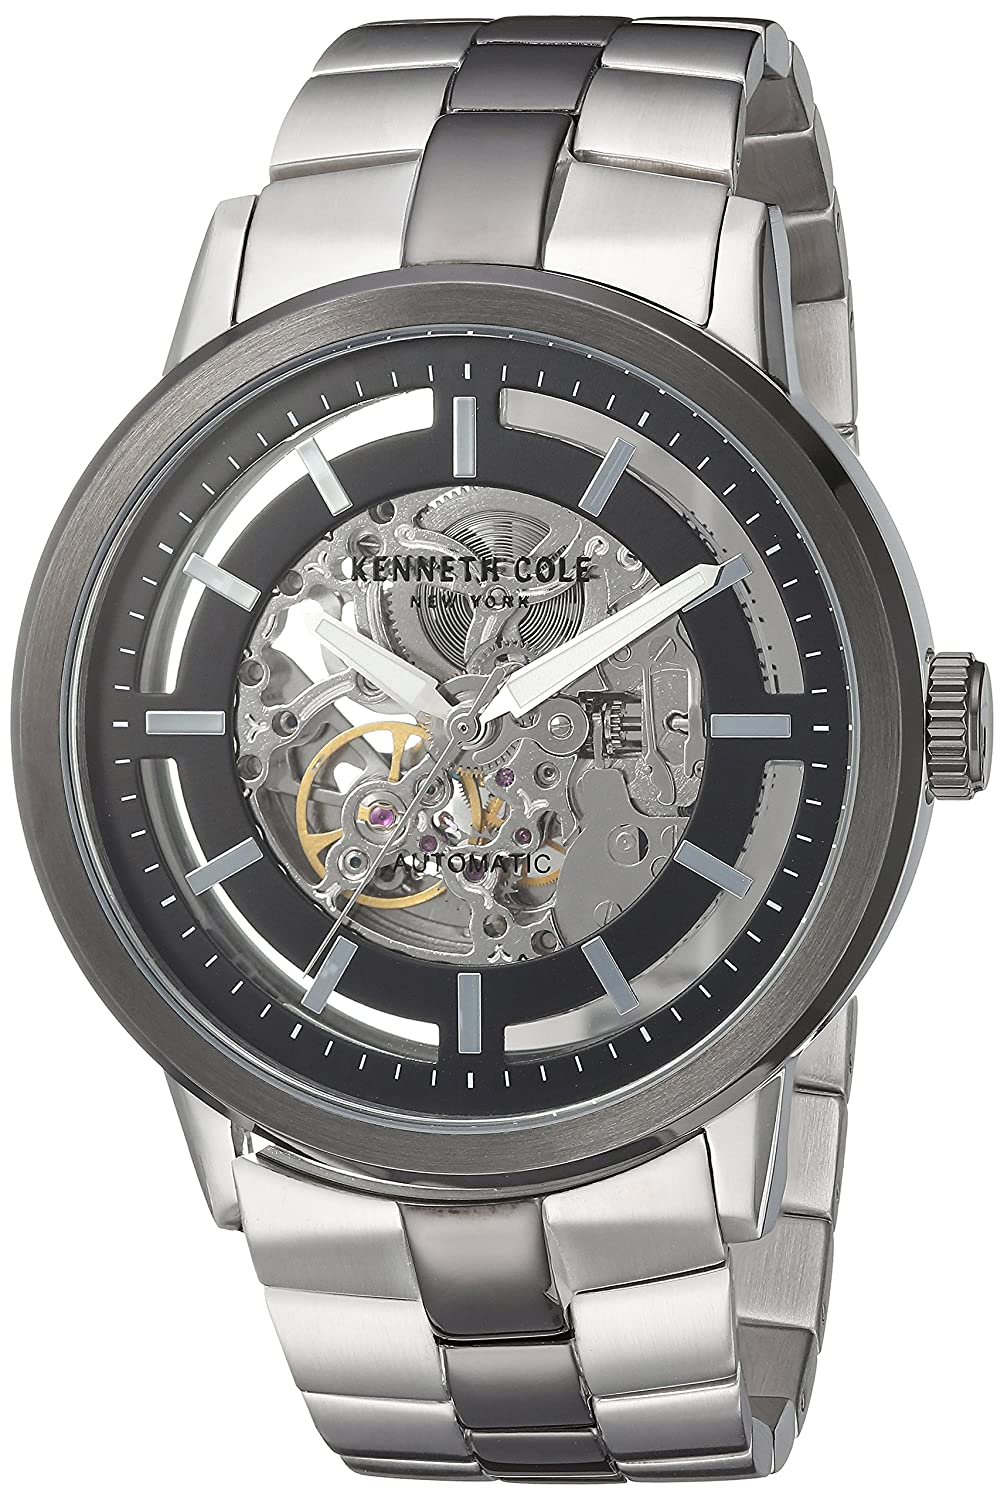 898763ca9 Amazon.com: Kenneth Cole New York Men's 10026785 Automatic Analog Display  Japanese Automatic Silver Watch: Watches